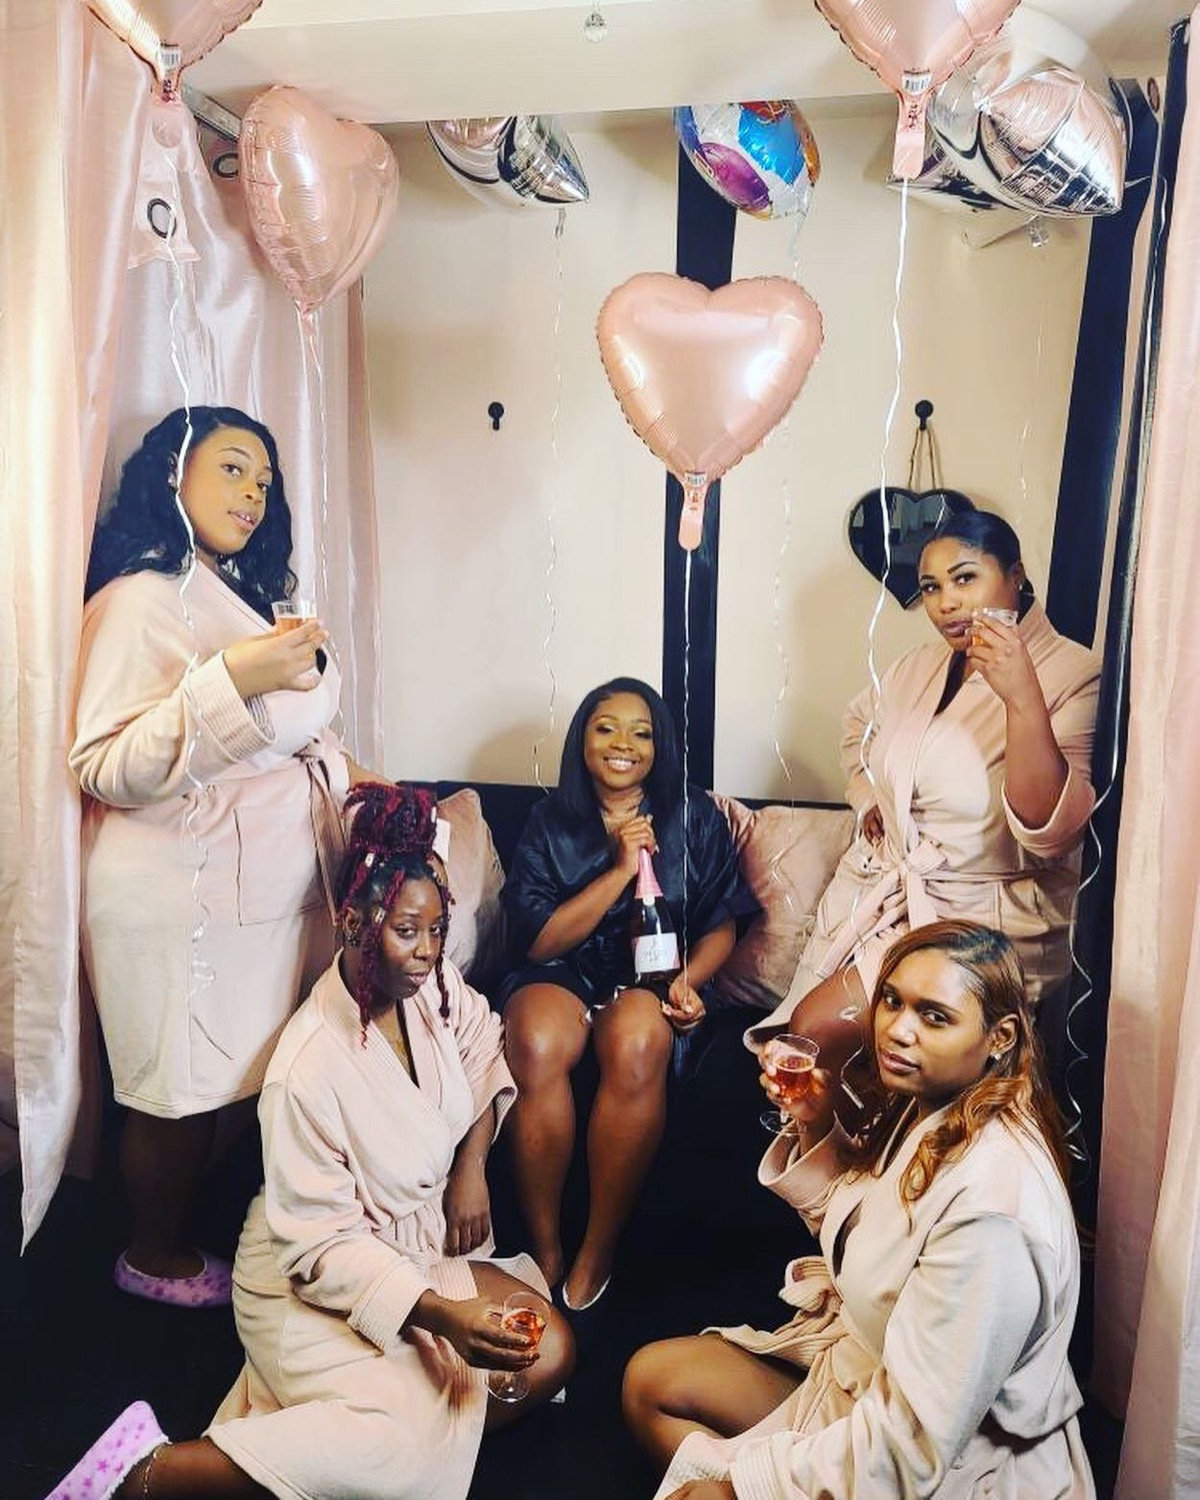 Pamper Party (up to 5 people)$420